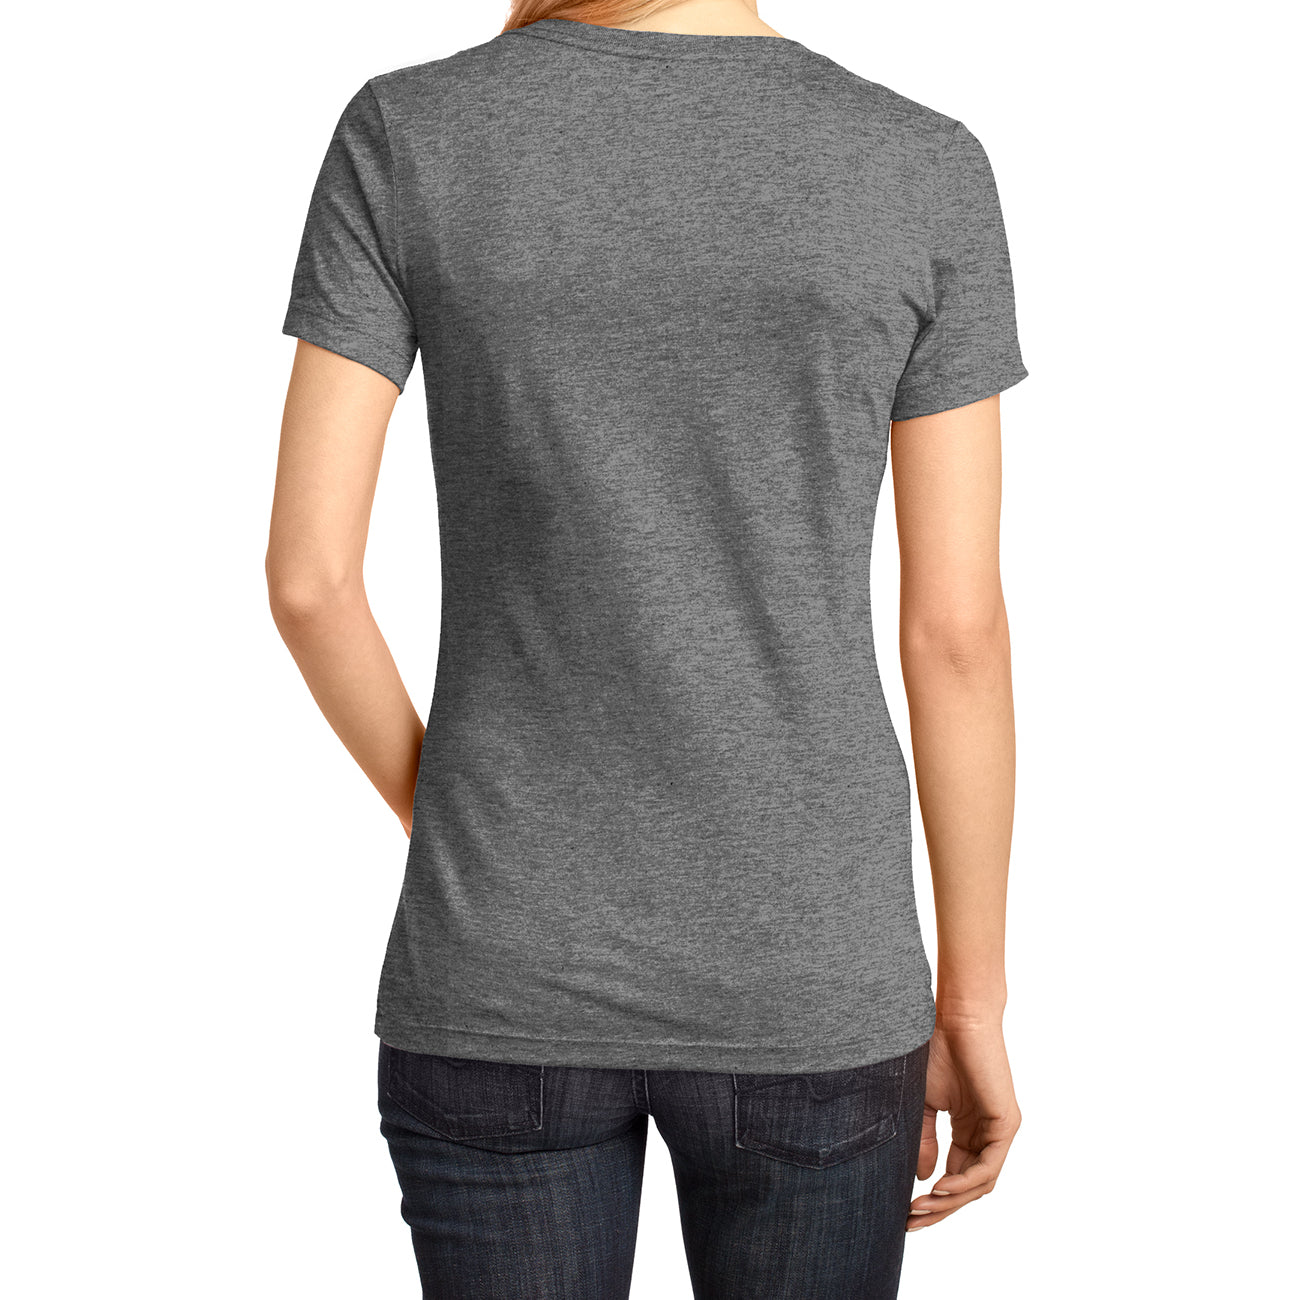 Ladies Perfect Weight V-Neck Tee - Heathered Nickel - Back